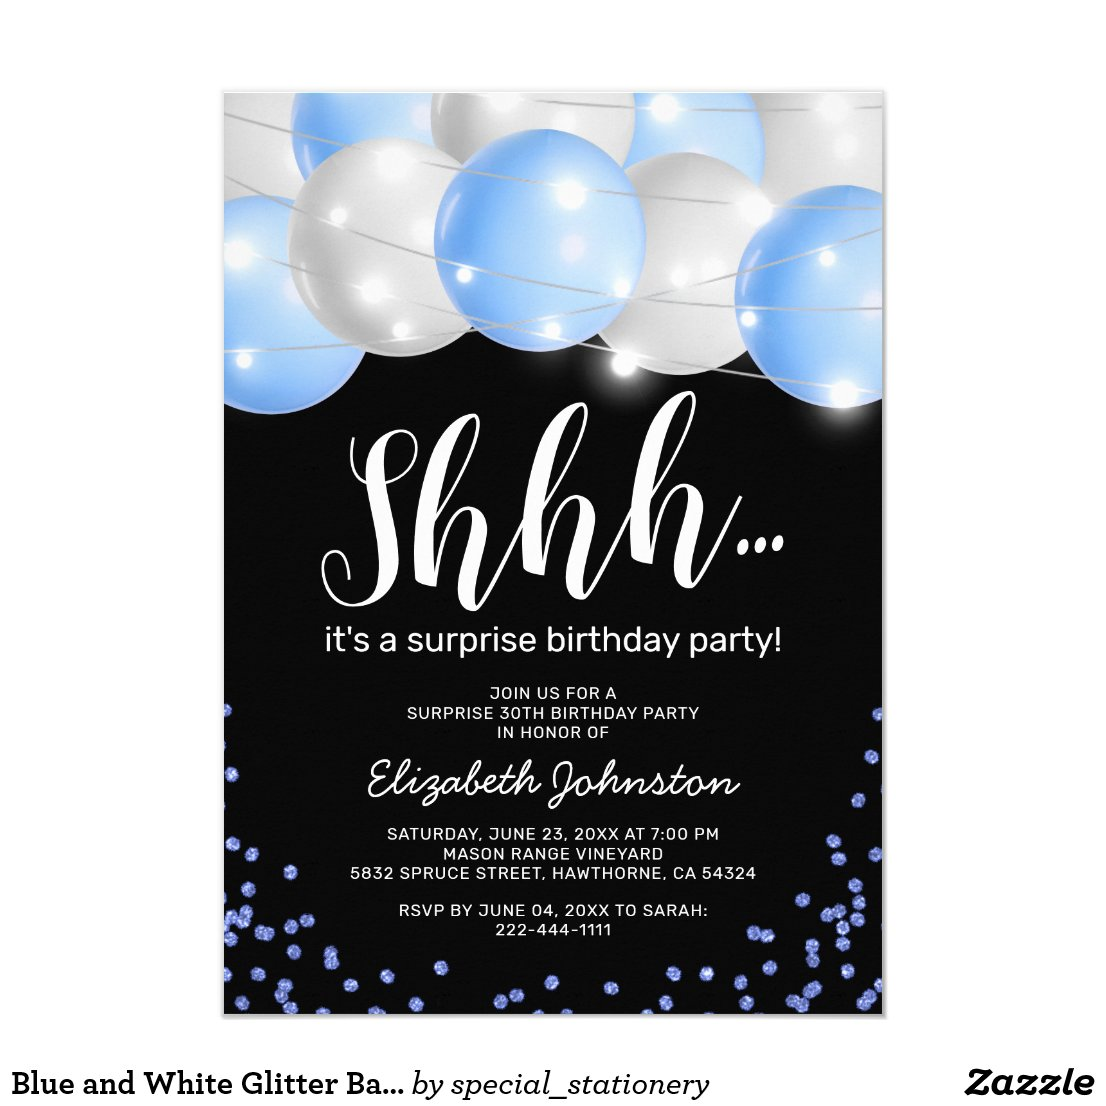 Blue and White Glitter Balloons Surprise Birthday Invitation